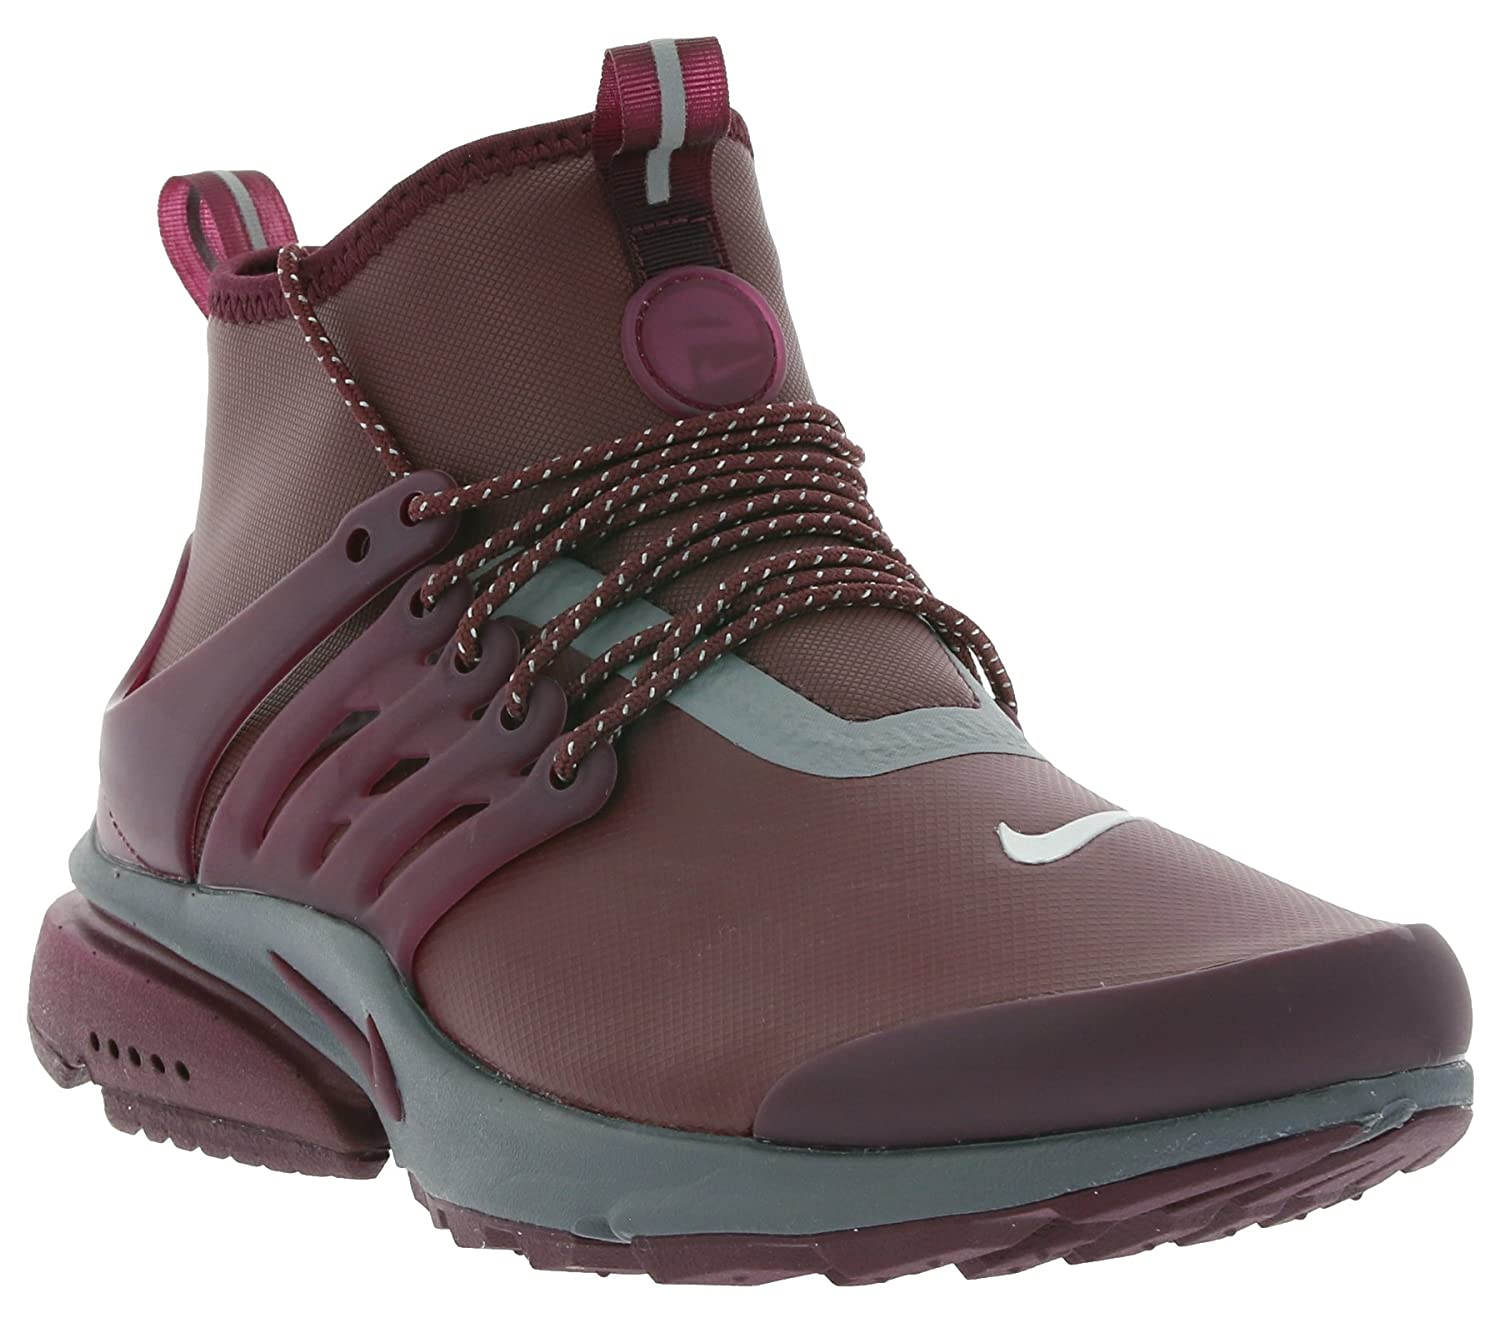 newest 9a9d1 f3c98 Nike Womens Air Presto Mid Utility Hi Top Trainers 859527 Sneakers Shoes  (UK 4.5 US 7 EU 38, Night Maroon 600)  Amazon.in  Shoes   Handbags